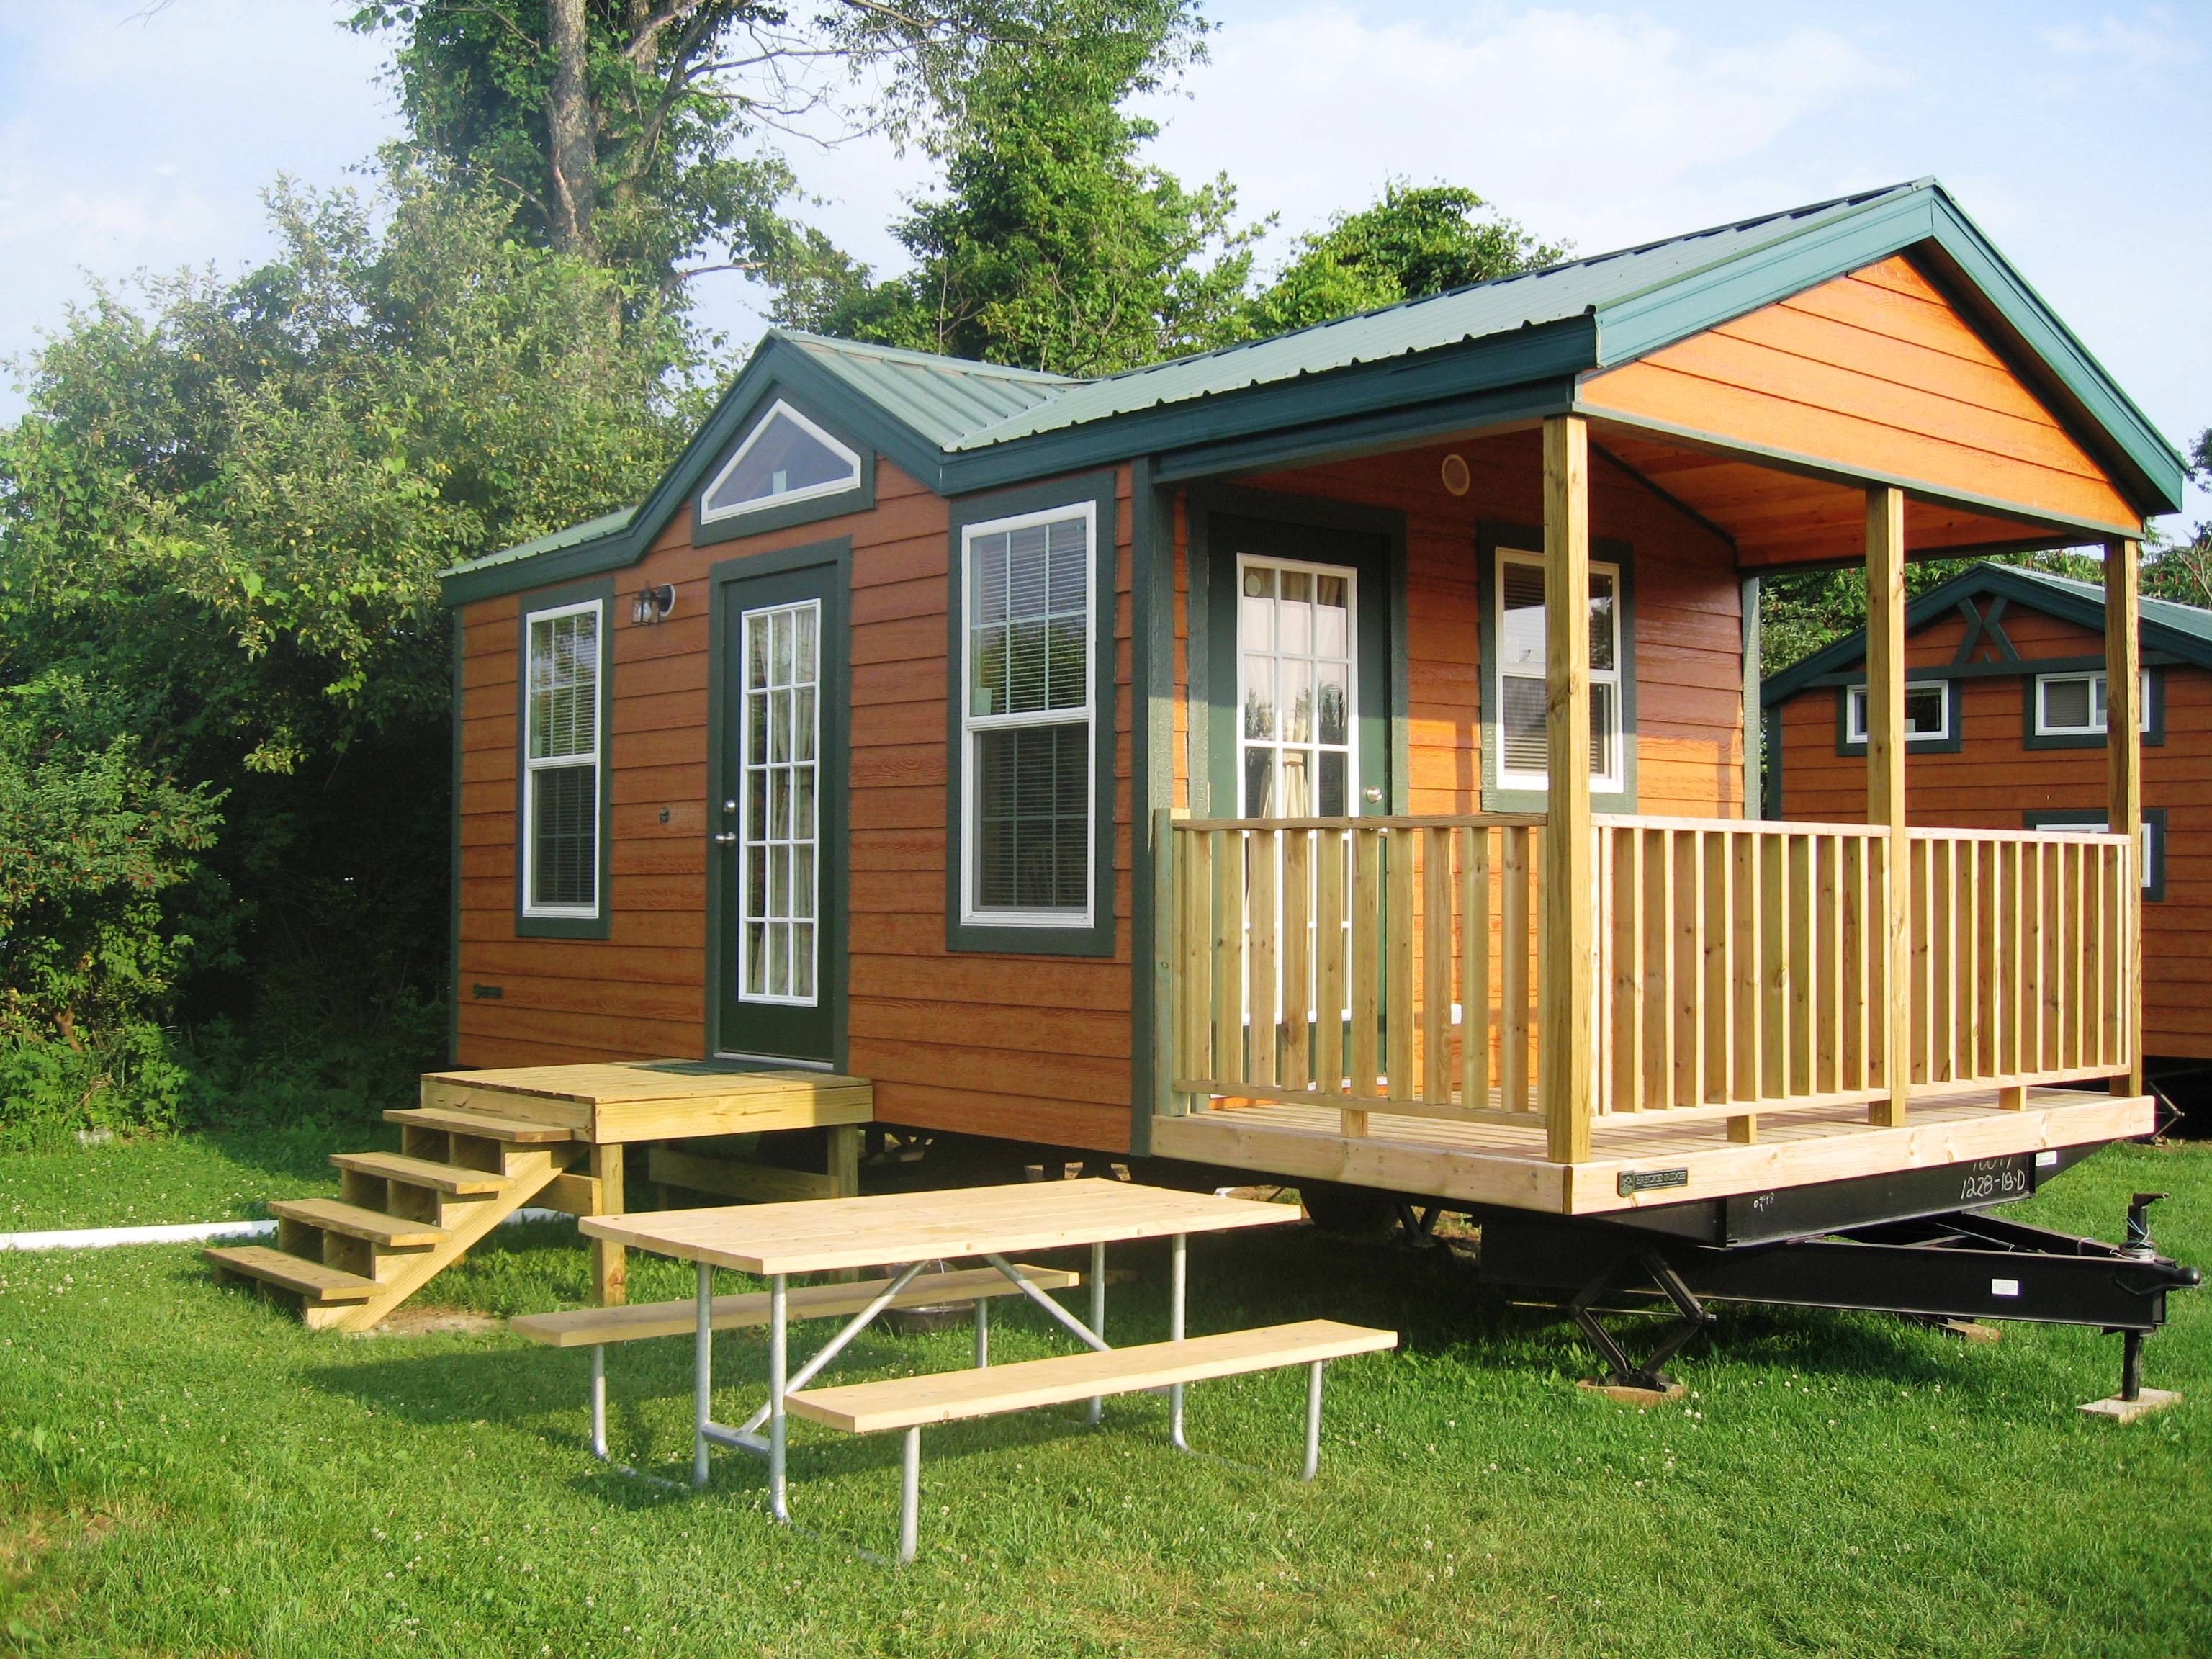 lake park sale property ny realtors optimized cabins lakes homes for co in mn